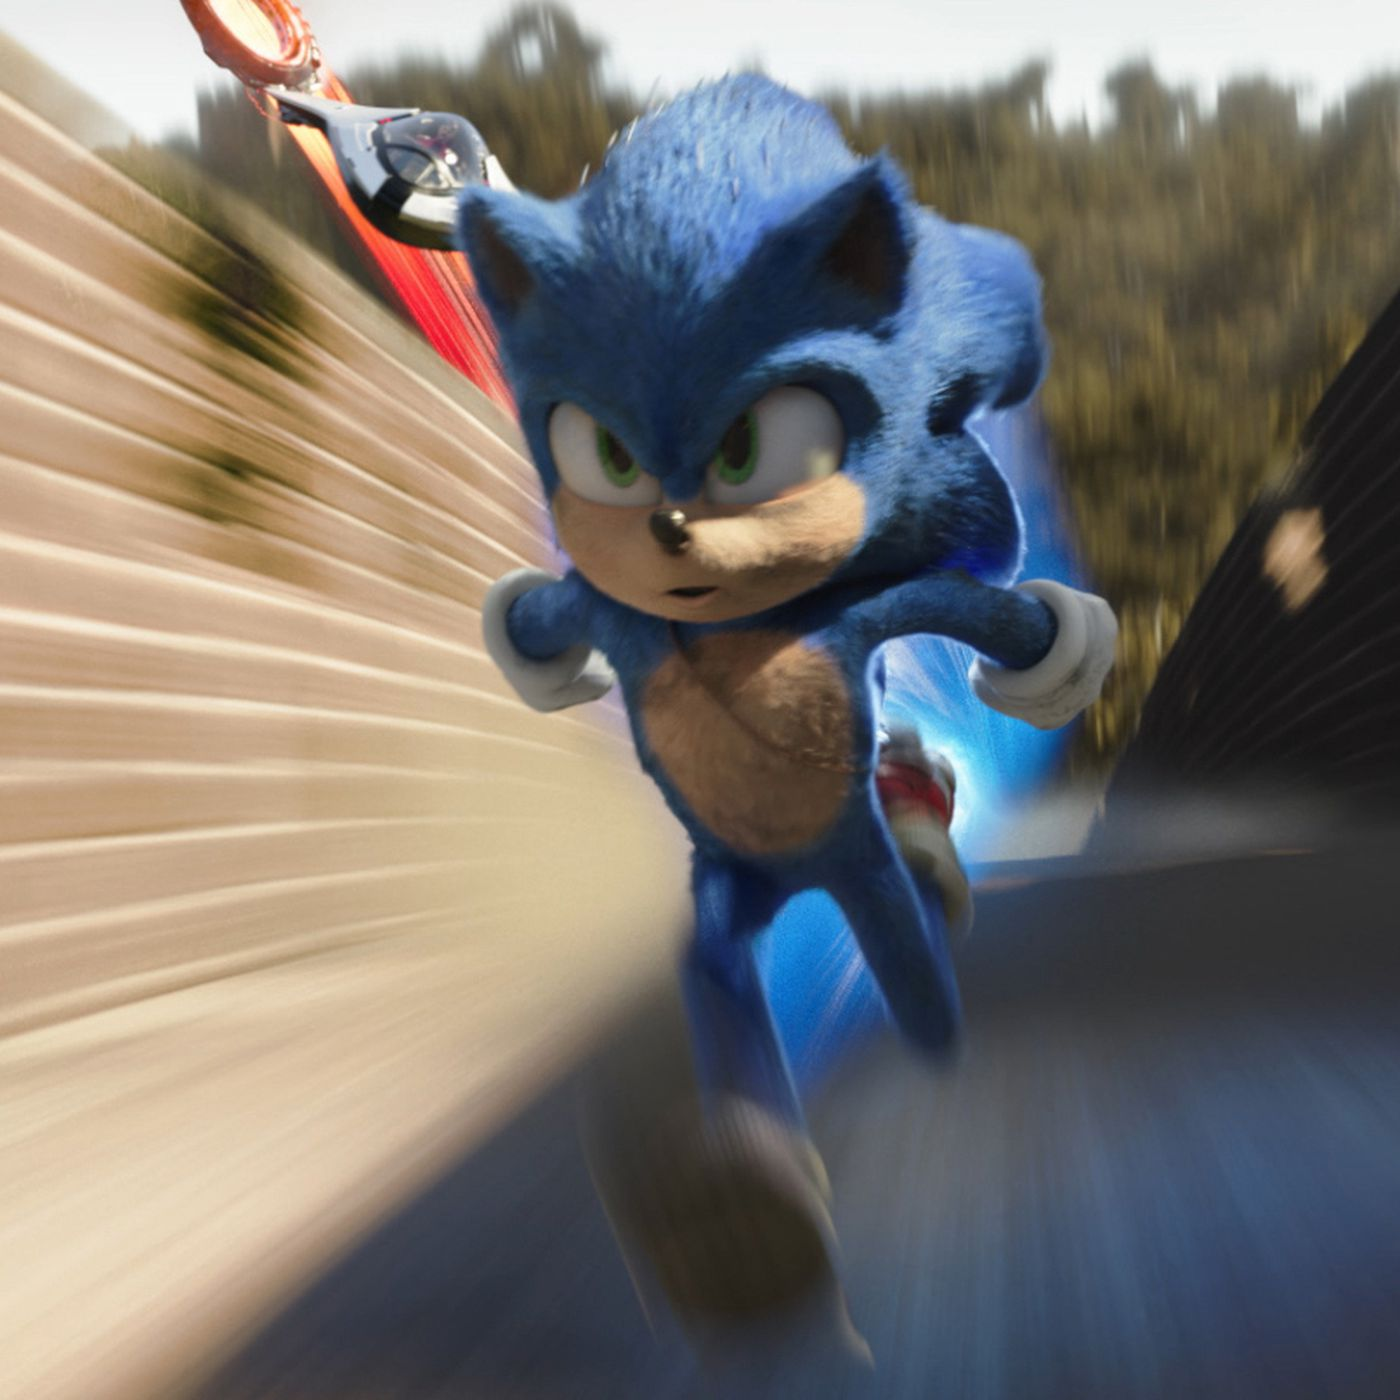 Sonic The Hedgehog Review A Fast And Furry Crowd Pleaser Chicago Sun Times